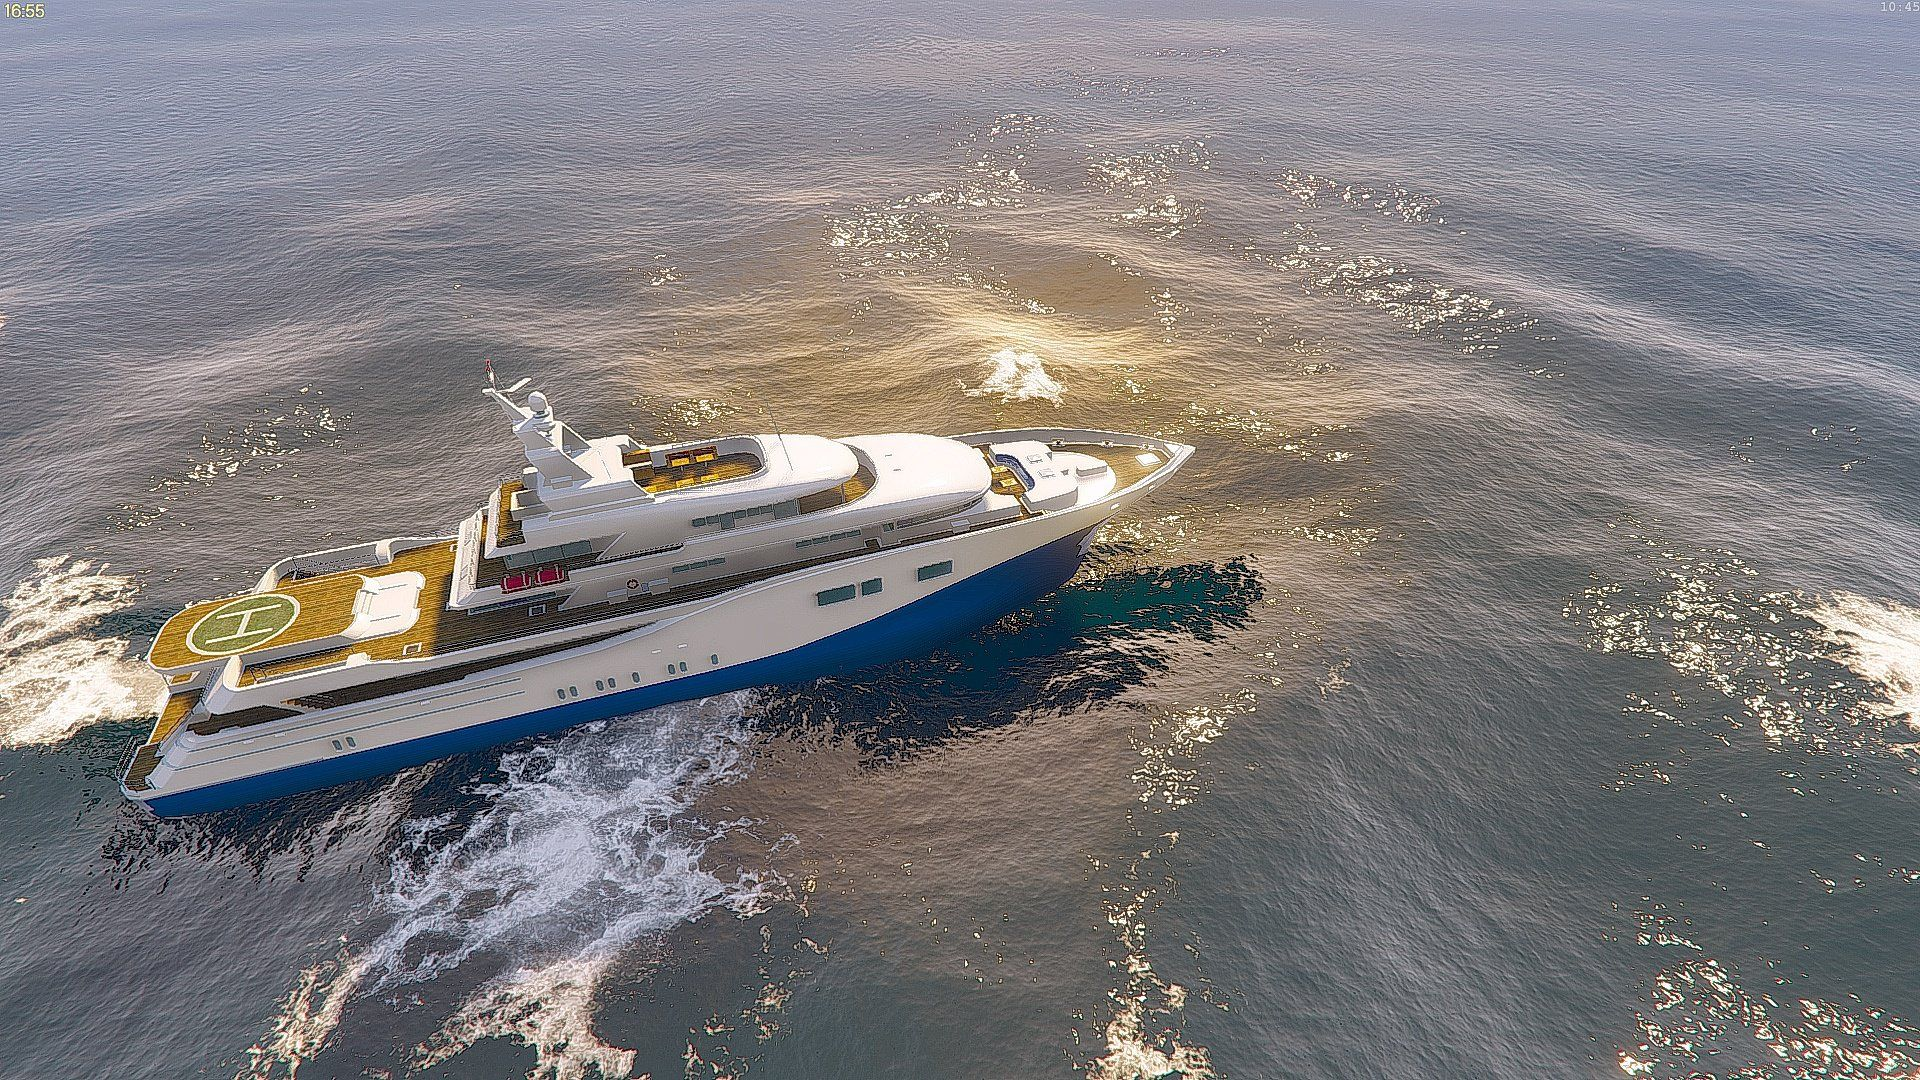 Drive Your GTA V Yacht In Single Player | Single player, Yacht, Gta